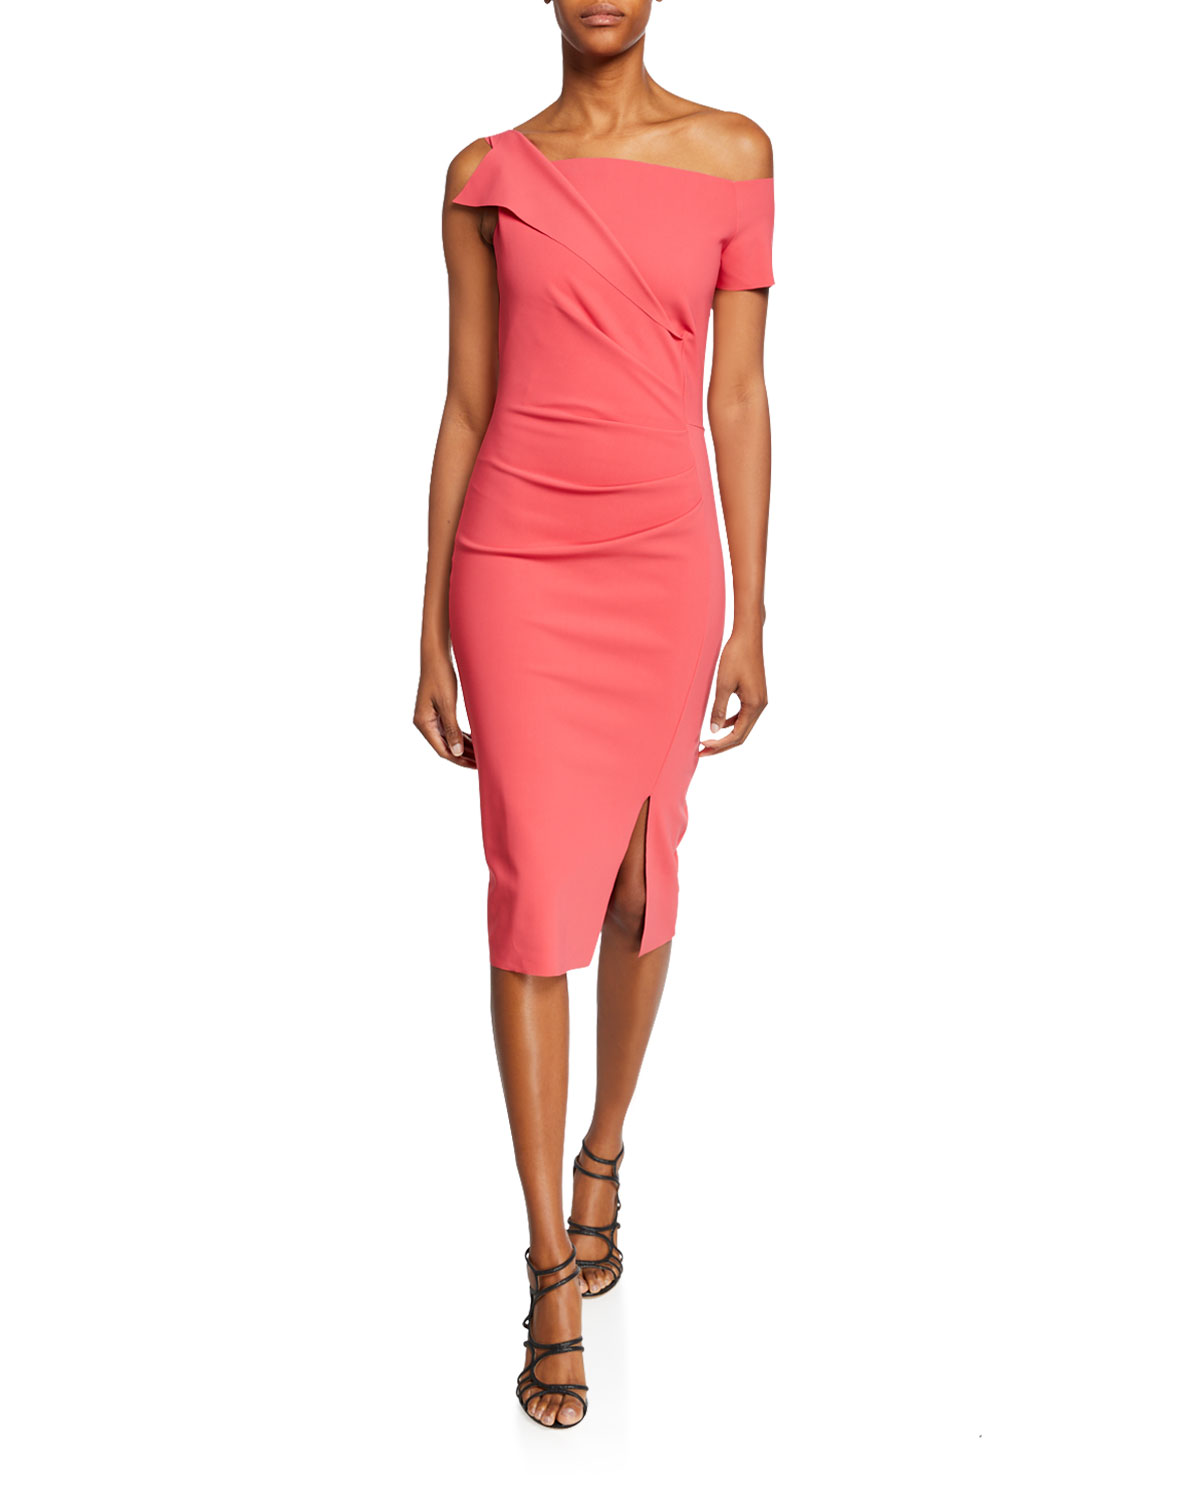 Chiara Boni La Petite Robe Dresses AFFIE ONE-SHOULDER ASYMMETRIC COCKTAIL DRESS